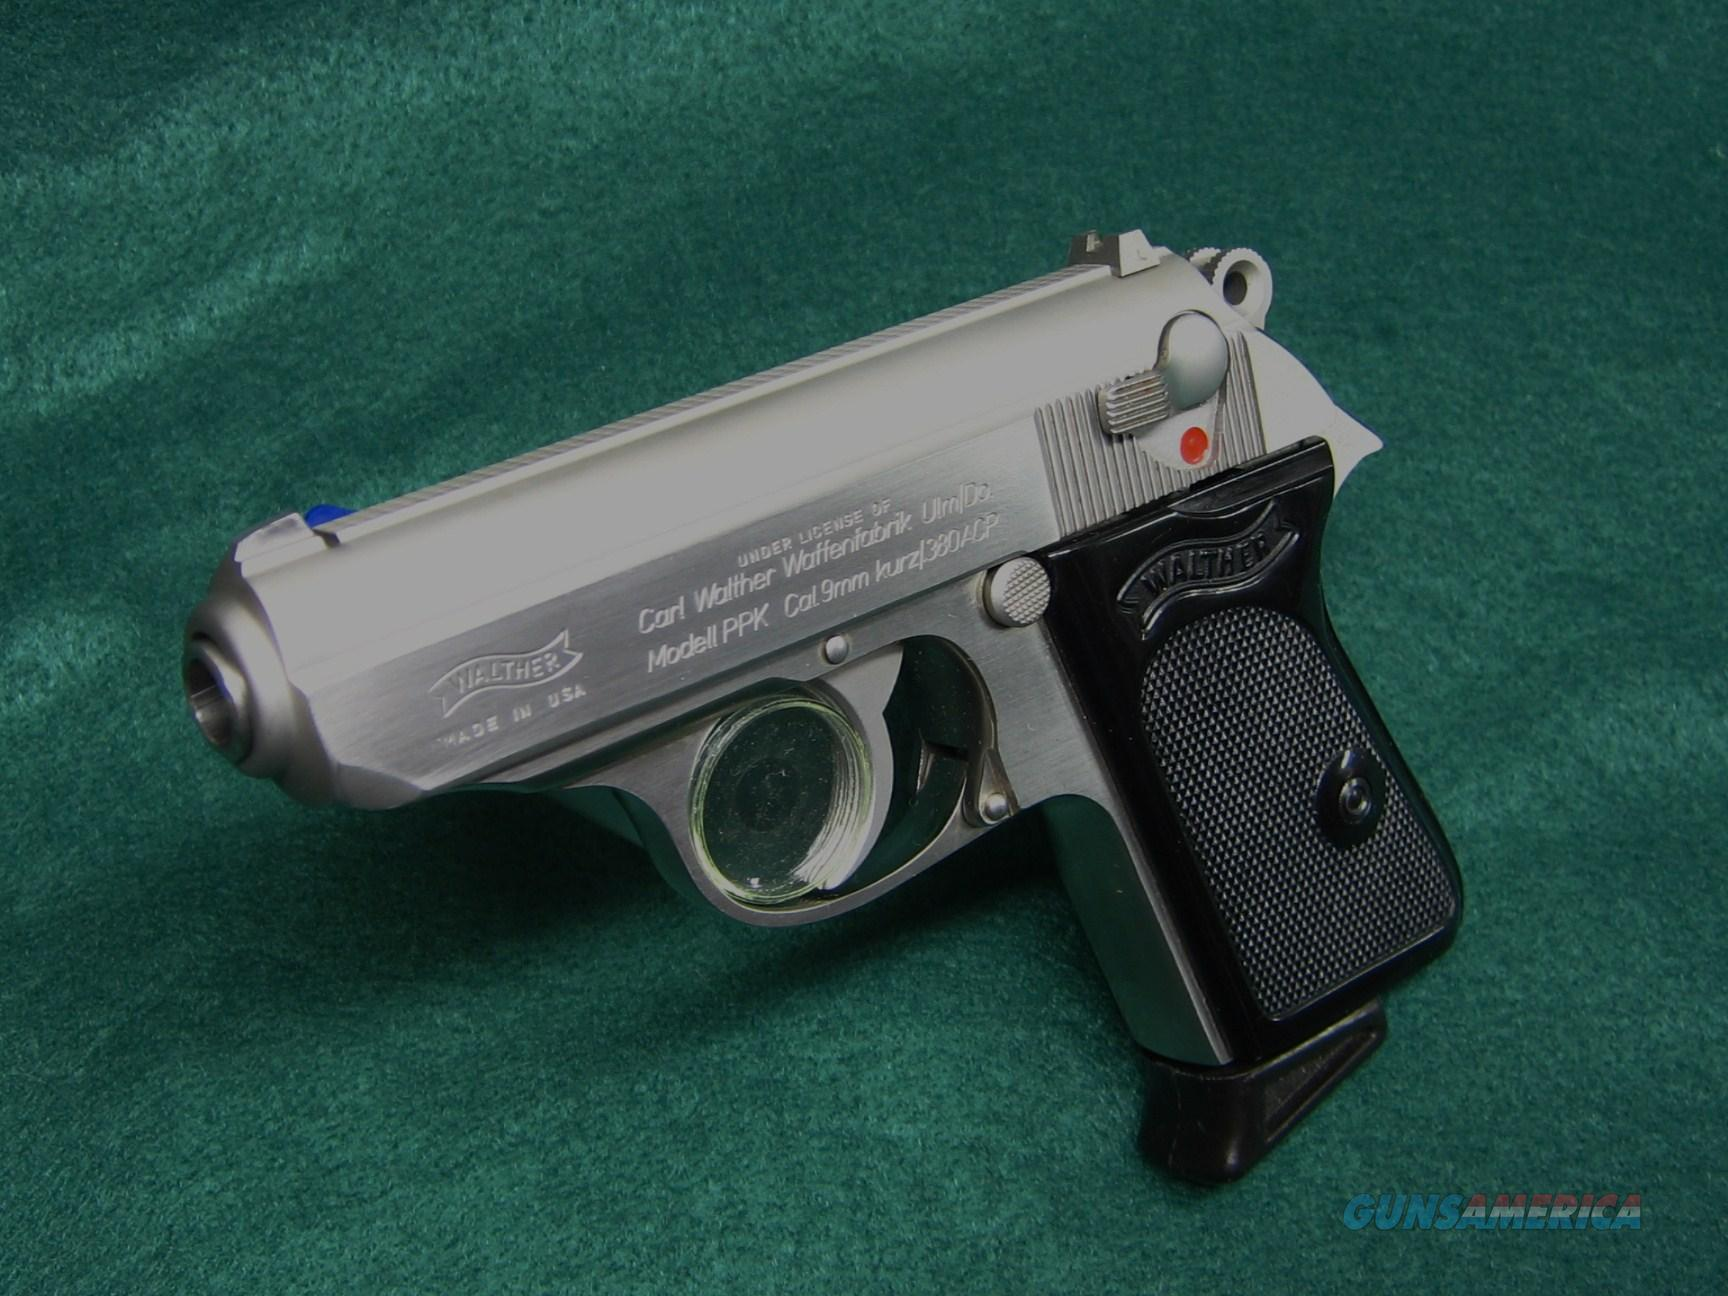 WALTHER MODELL PPK CAL 9mm kurz/.380 ACP W/2 MAGS  Guns > Pistols > Interarms Pistols